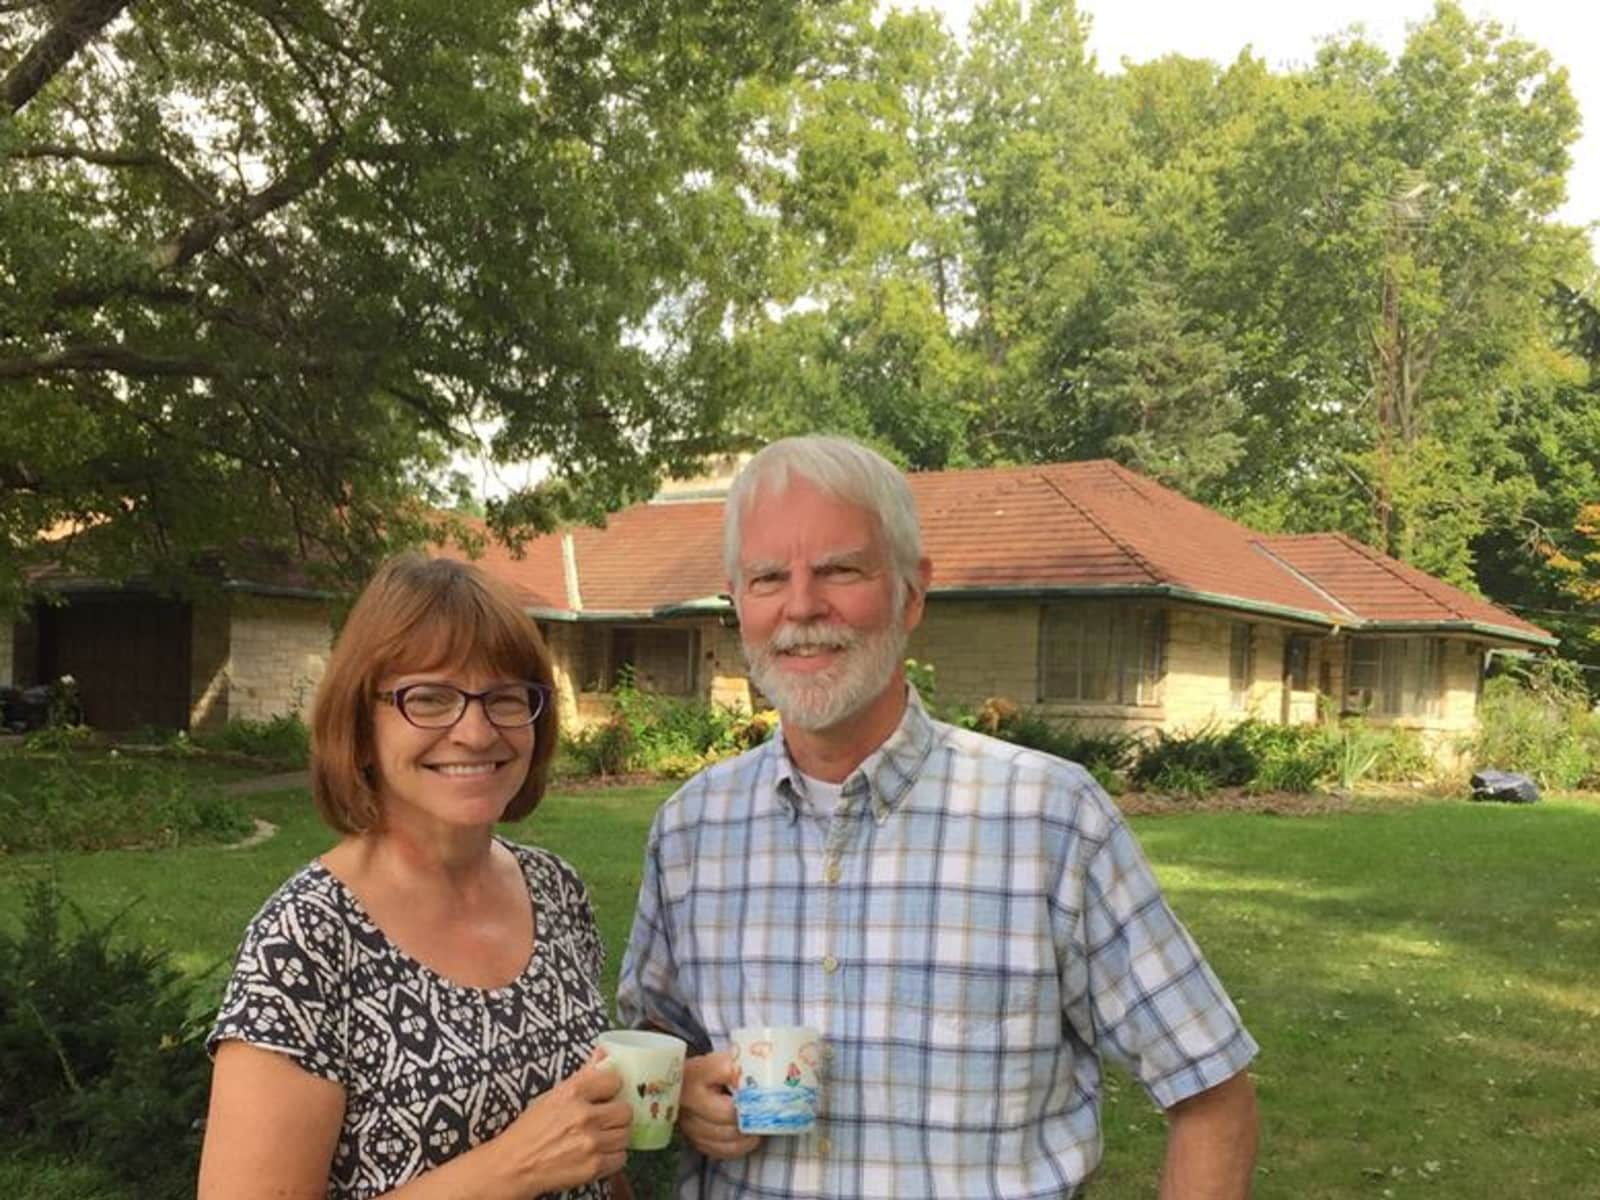 Kathy & Doug from Normal, Illinois, United States